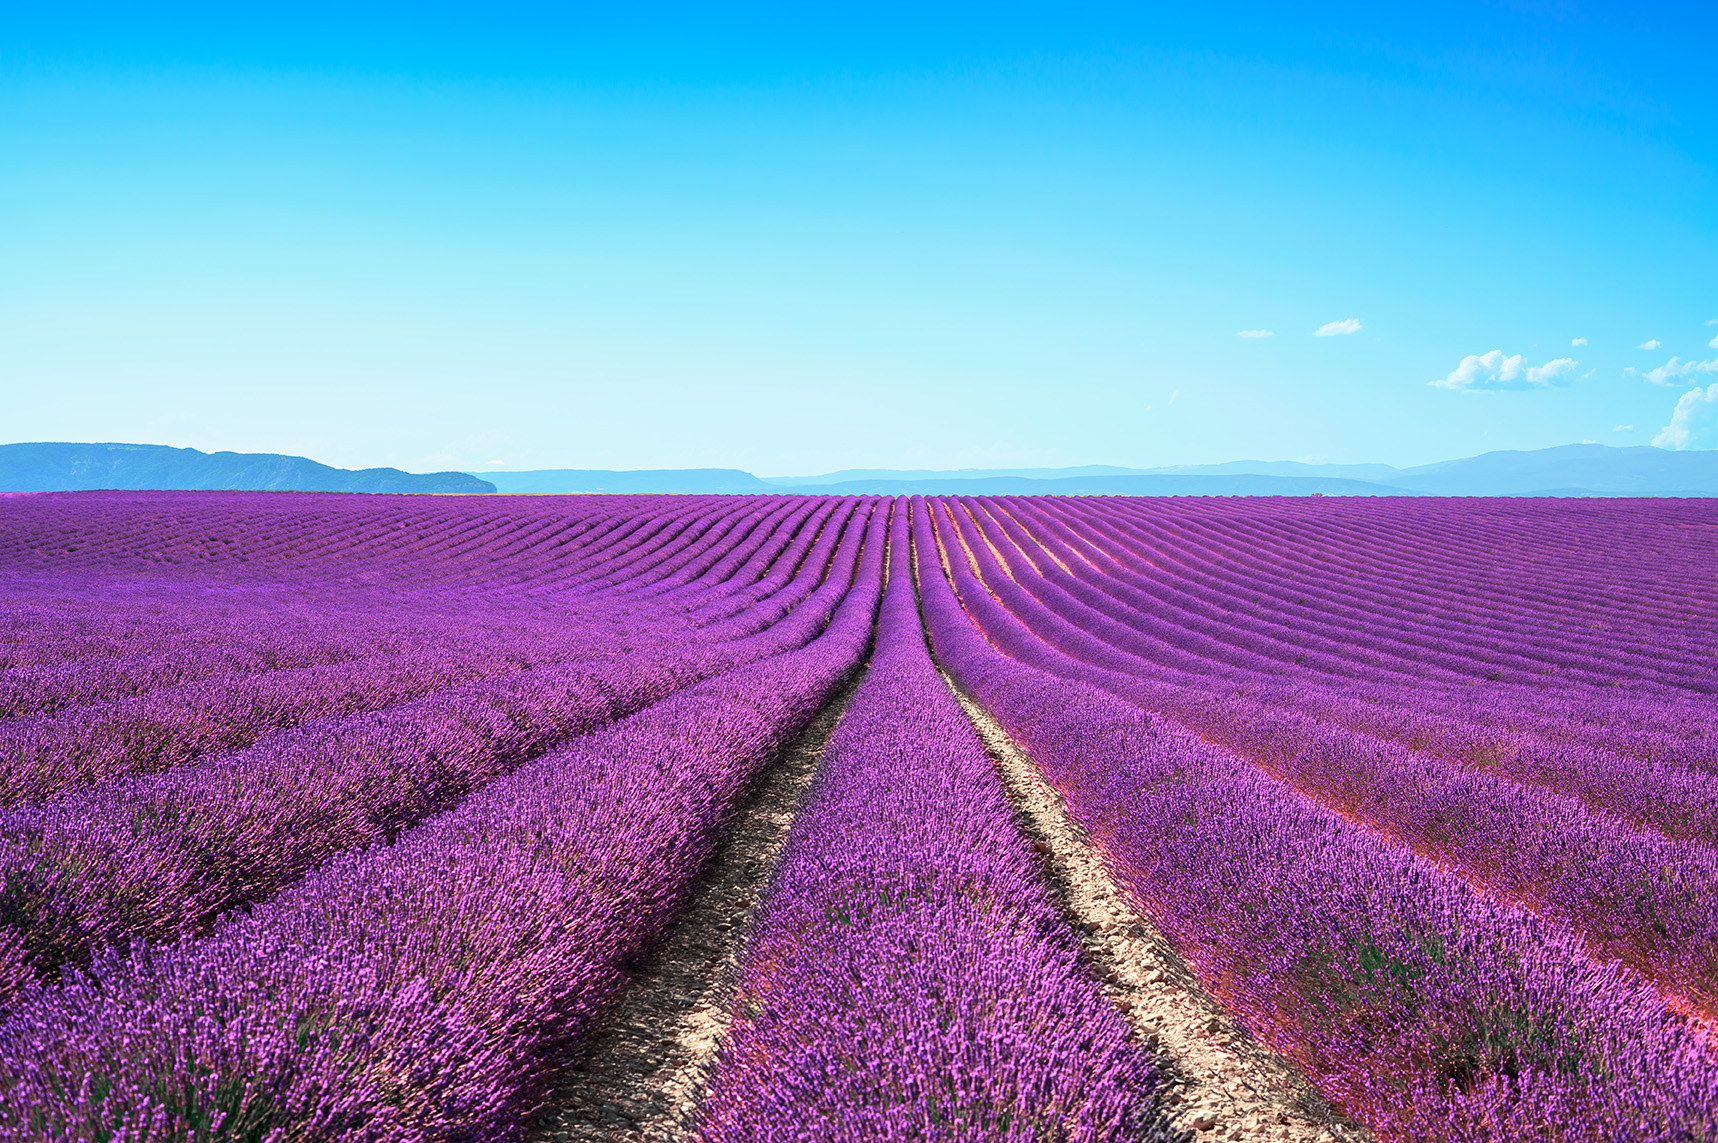 Lavender flower blooming scented fields in endless rows by StevanZZ